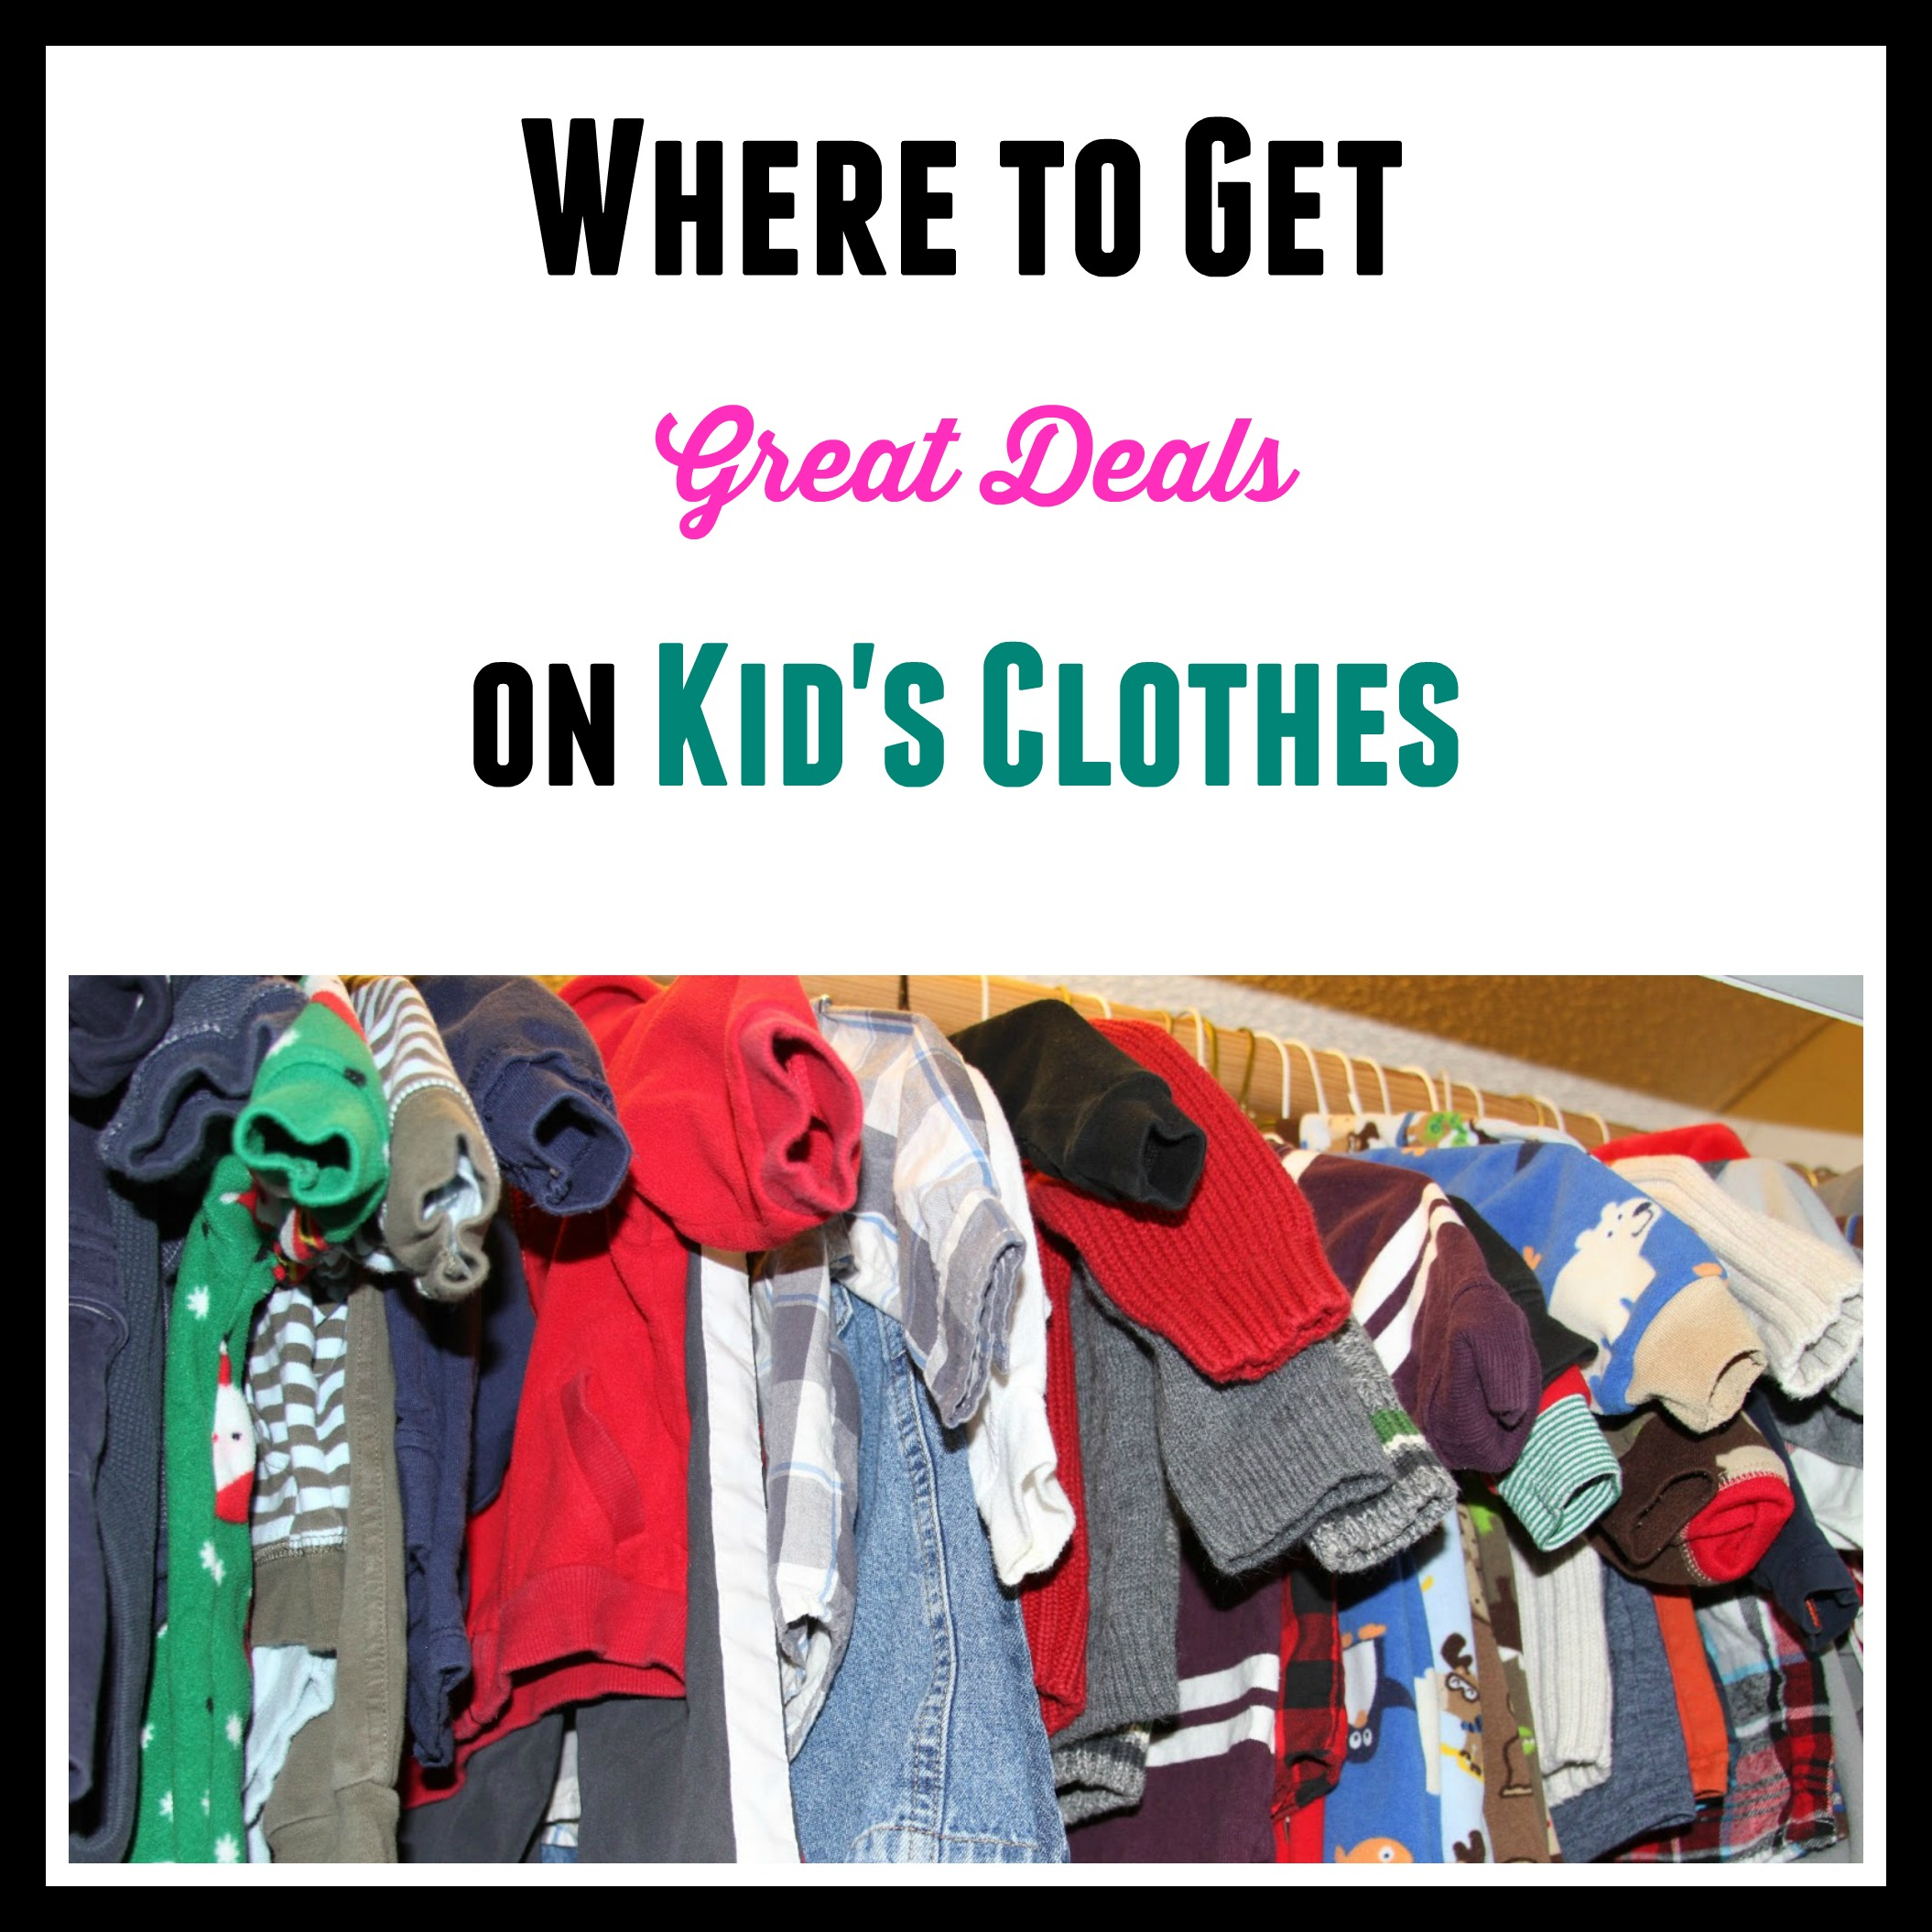 Where To Get Great Deals on Kid's Clothes